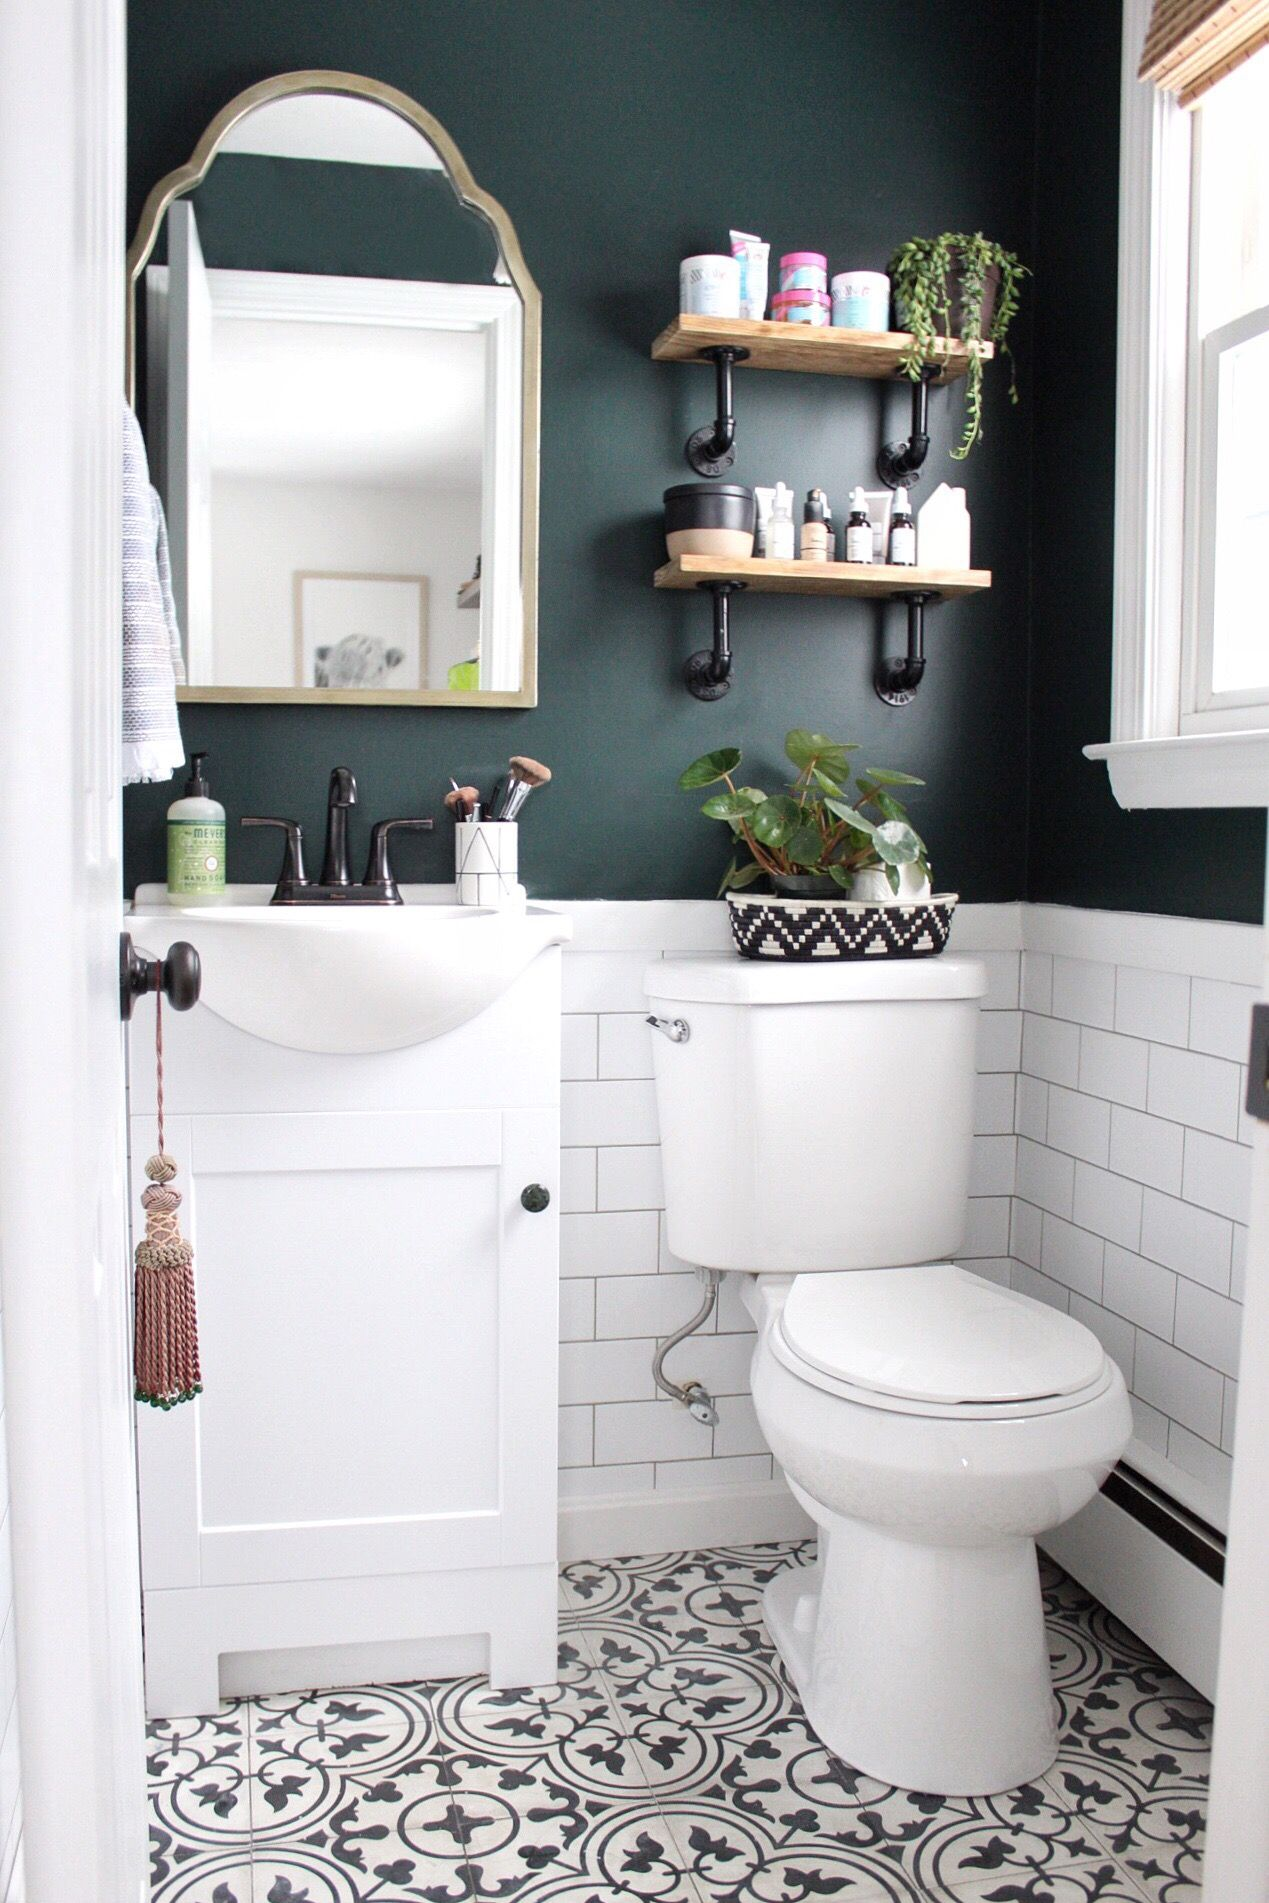 My Top Favorite Paint Colors Of All Time In 2020 Small Bathroom Painting Bathroom Bathroom Inspiration